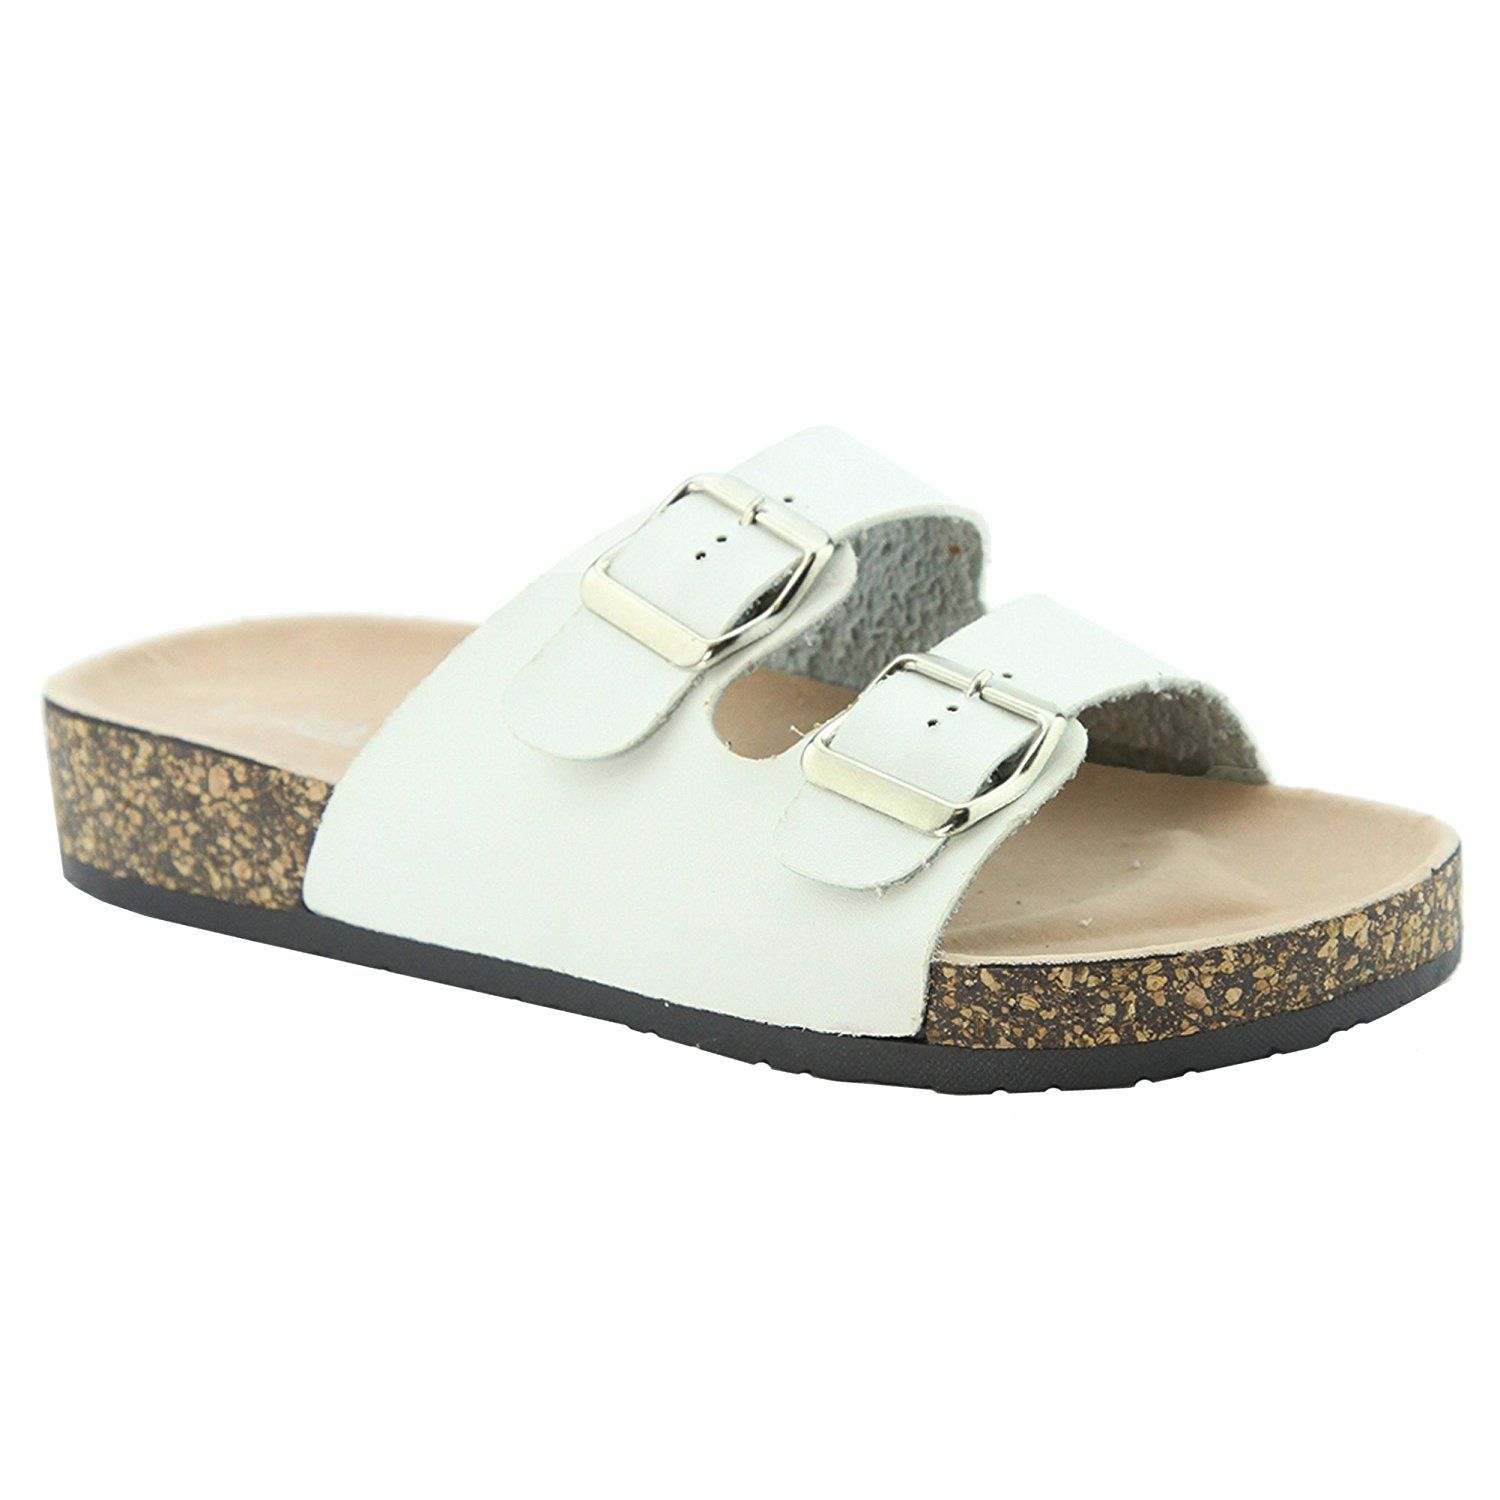 349cae659fc New Women Casual Buckle Straps Sandals Thong Flip Flop Platform Footbed  Shoes 8.5 US -- Visit the image link more details.